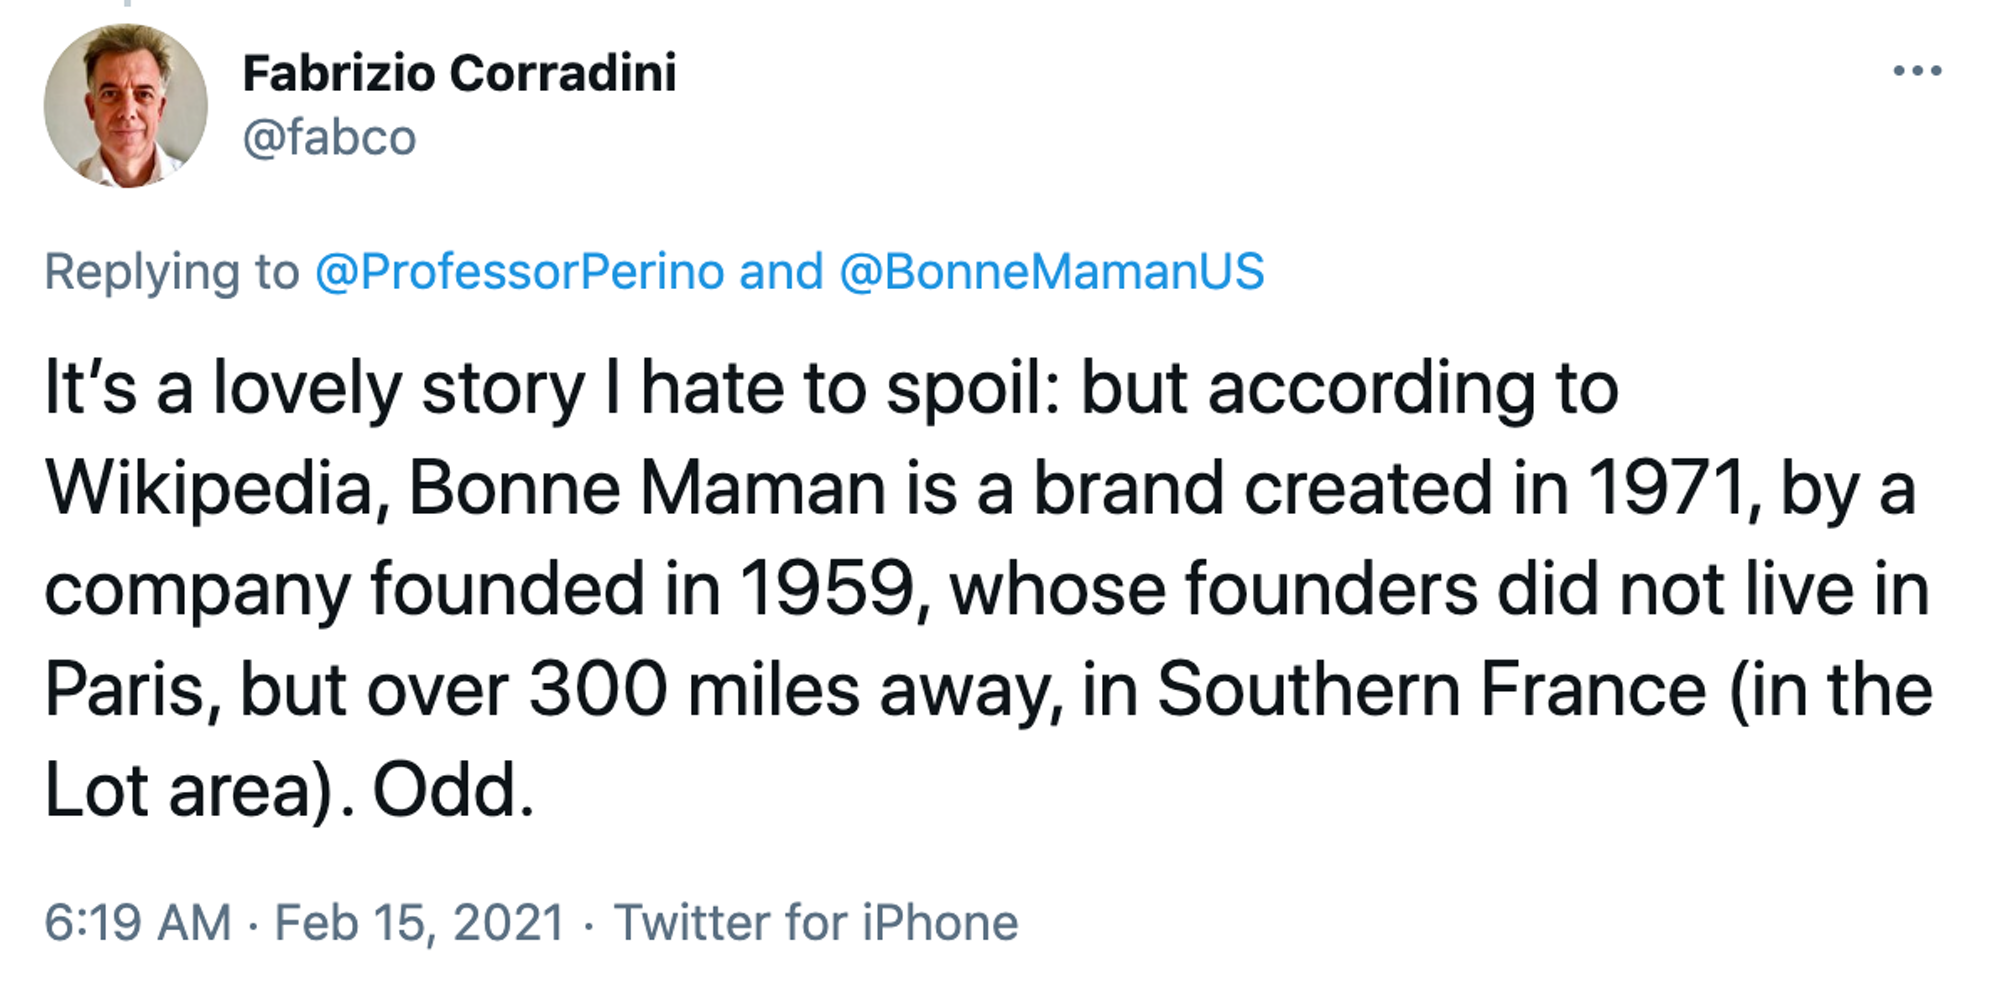 It's a lovely story I hate to spoil: but according to Wikipedia, Bonne Maman is a brand created in 1971, by a company founded in 1959, whose founders did not live in Paris, but over 300 miles away, in Southern France (in the Lot area). Odd.